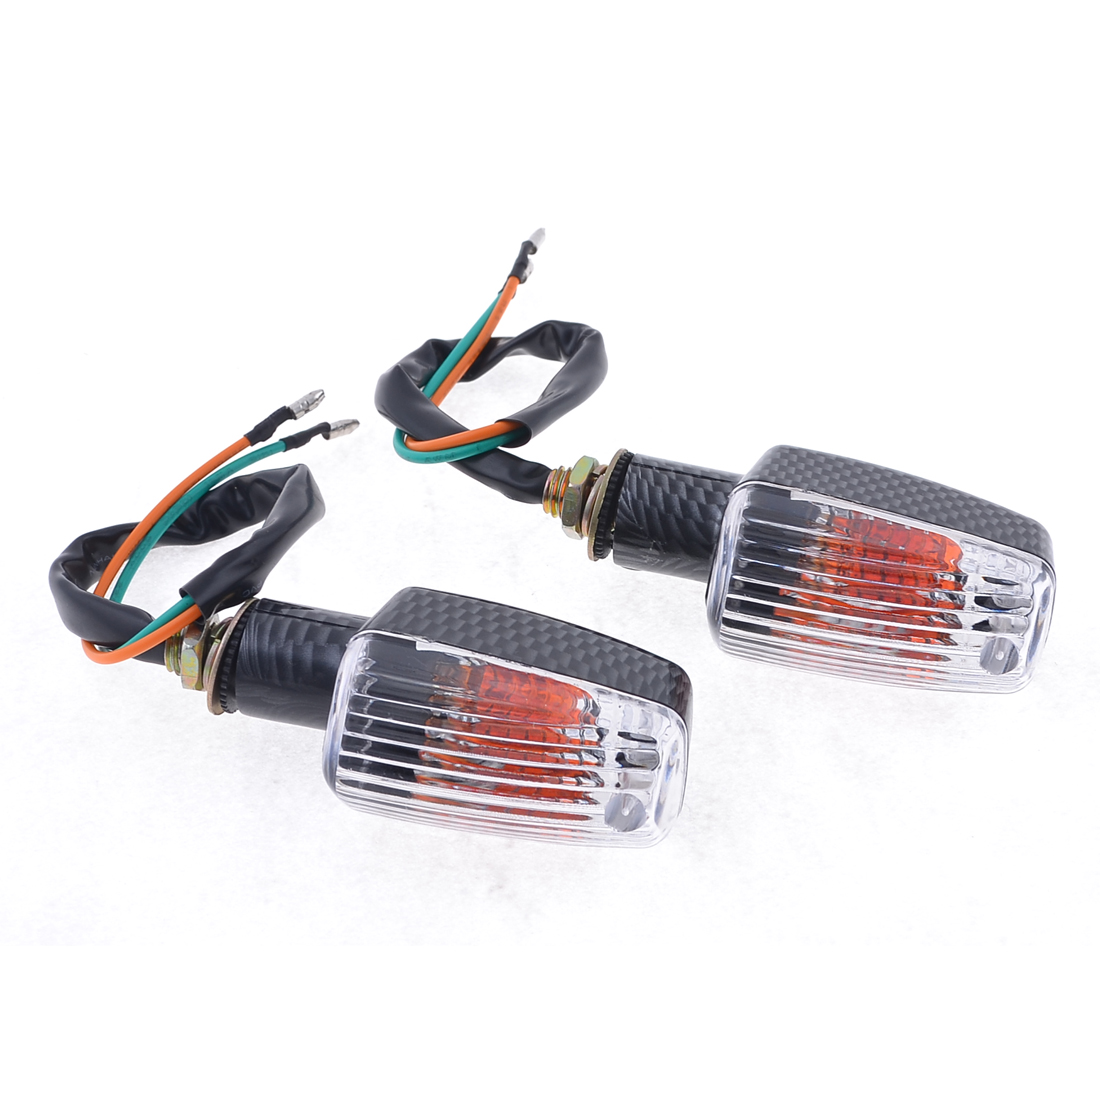 2 Pcs Carbon Fiber Pattern Yellow LED Motorcycle Turn Signal Light Lamp